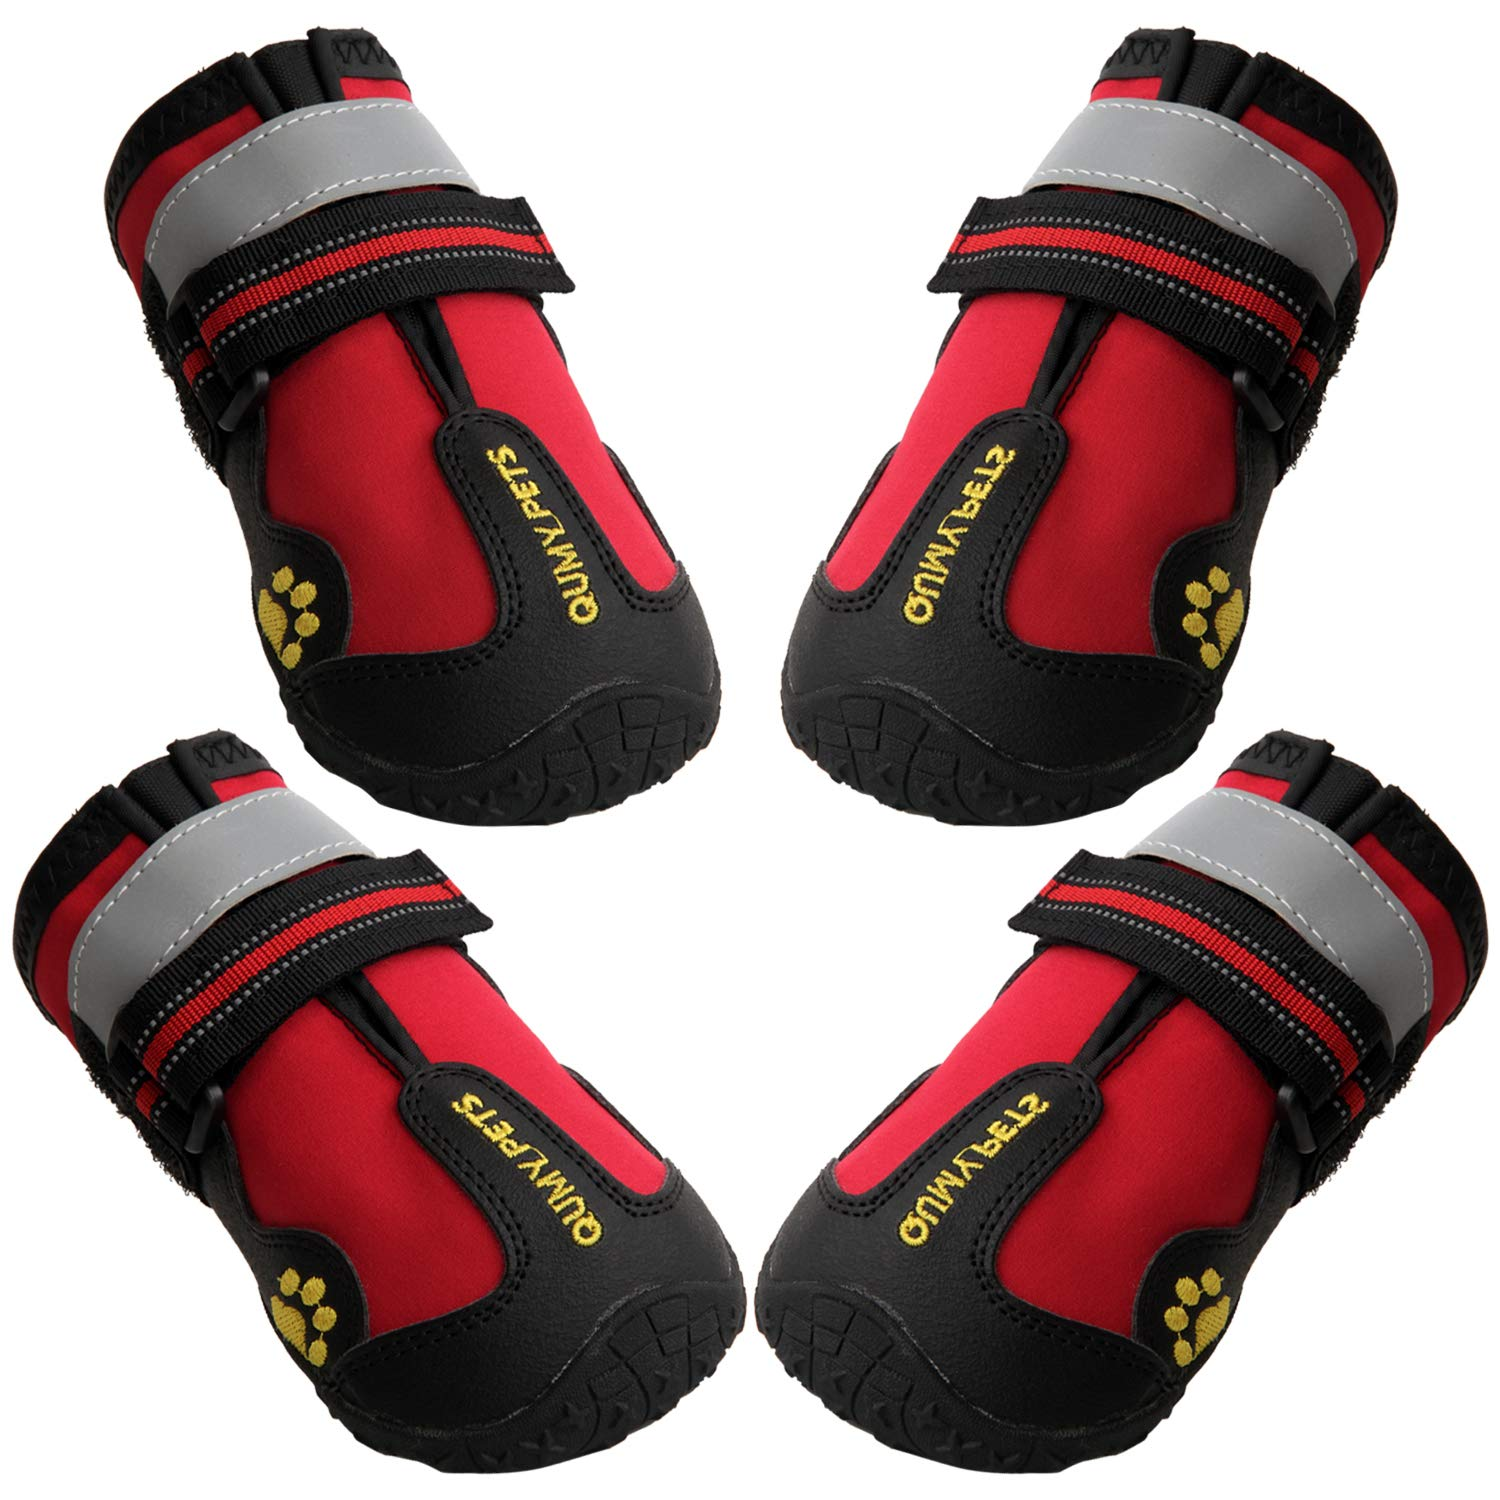 QUMY Dog Boots Waterproof Shoes for Large Dogs with Reflective Velcro Rugged Anti-Slip Sole Black 4PCS (Size 8: 3.3''x2.9''(LW), Red) by QUMY